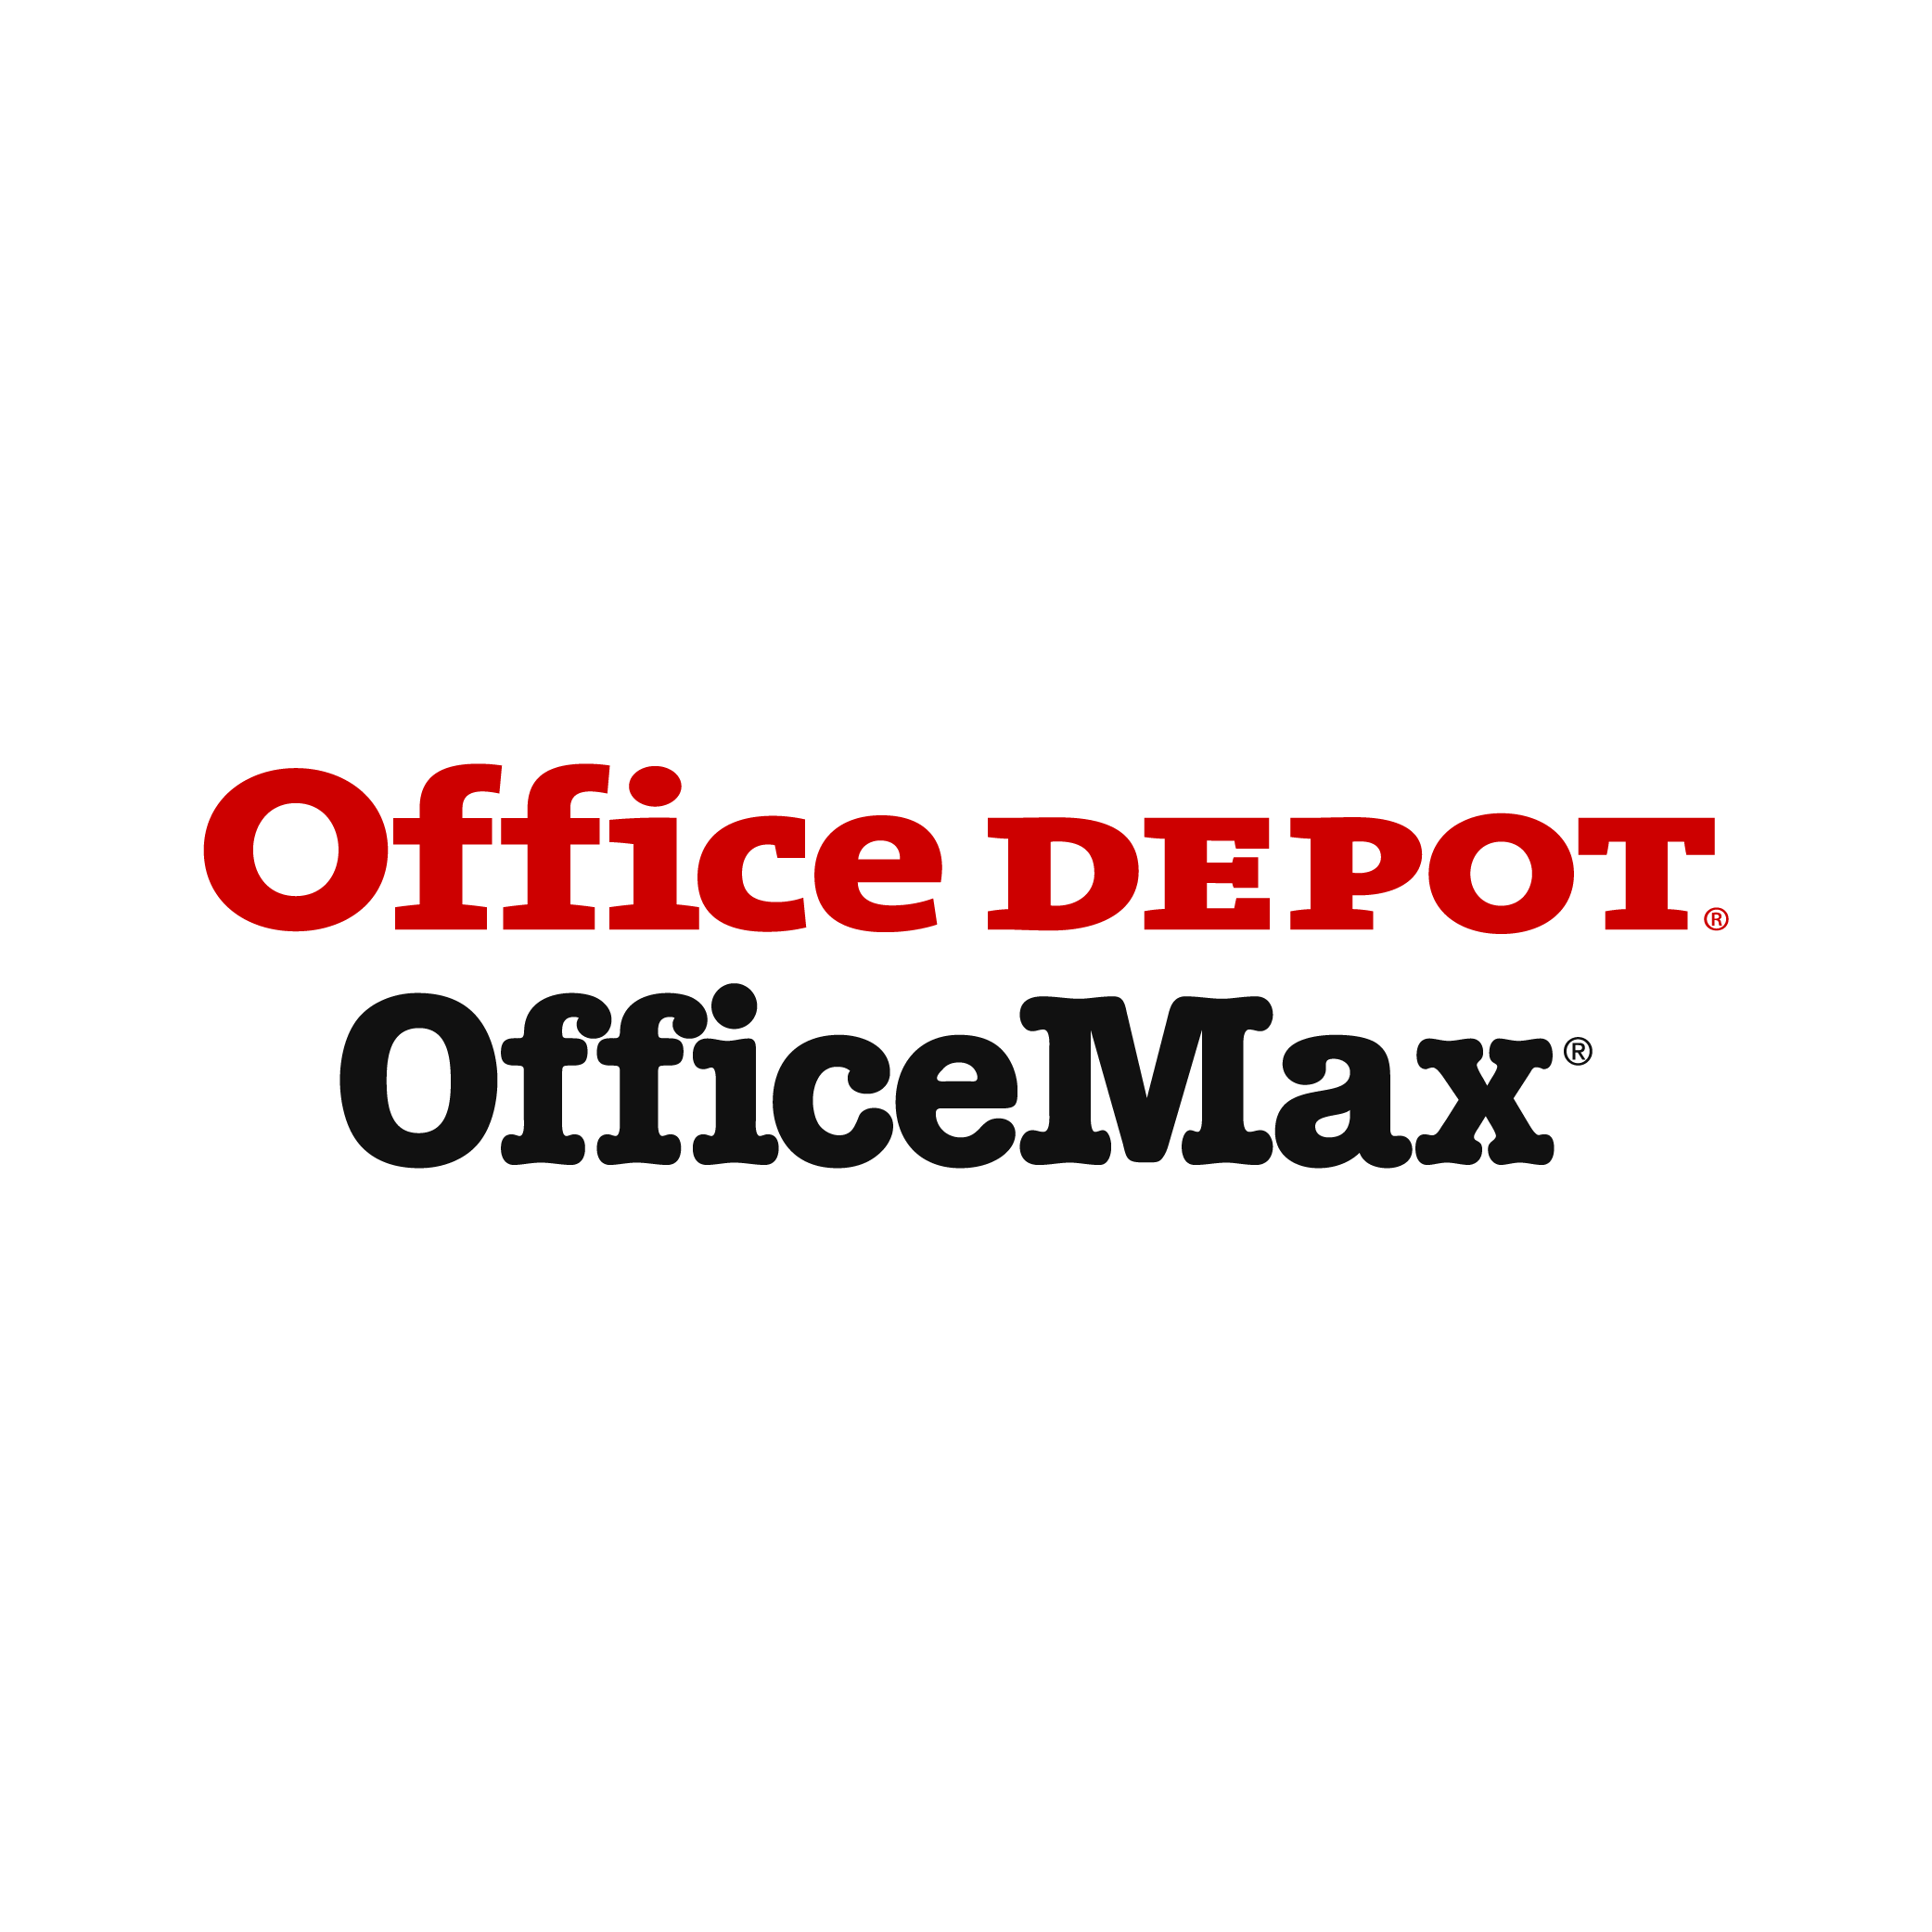 Office Depot image 7